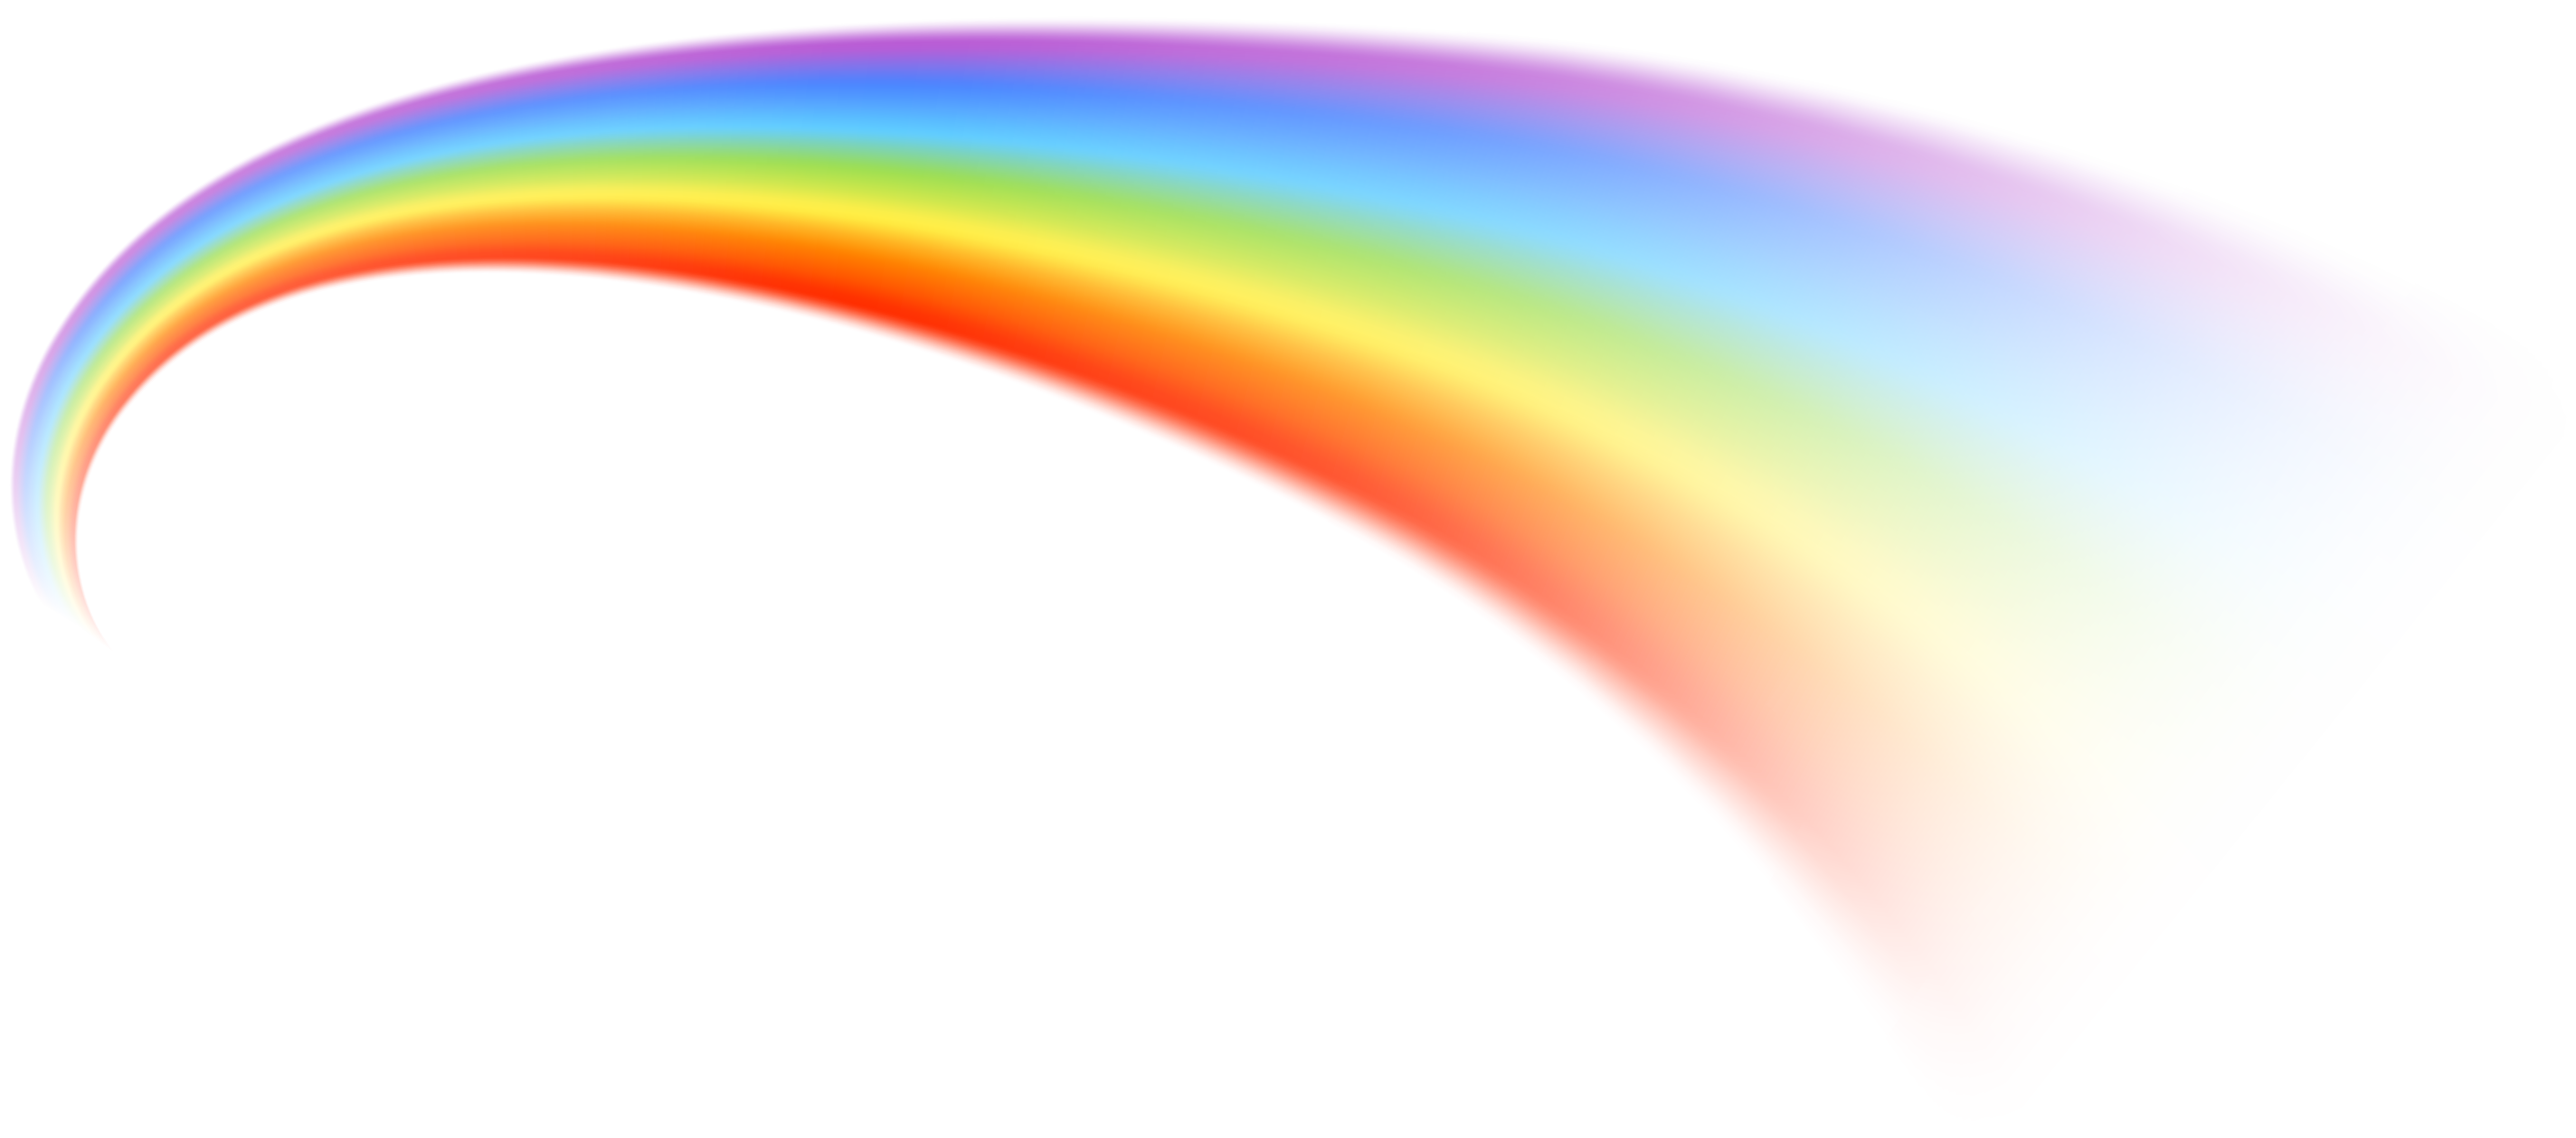 The Rainbow Png - View full size ?